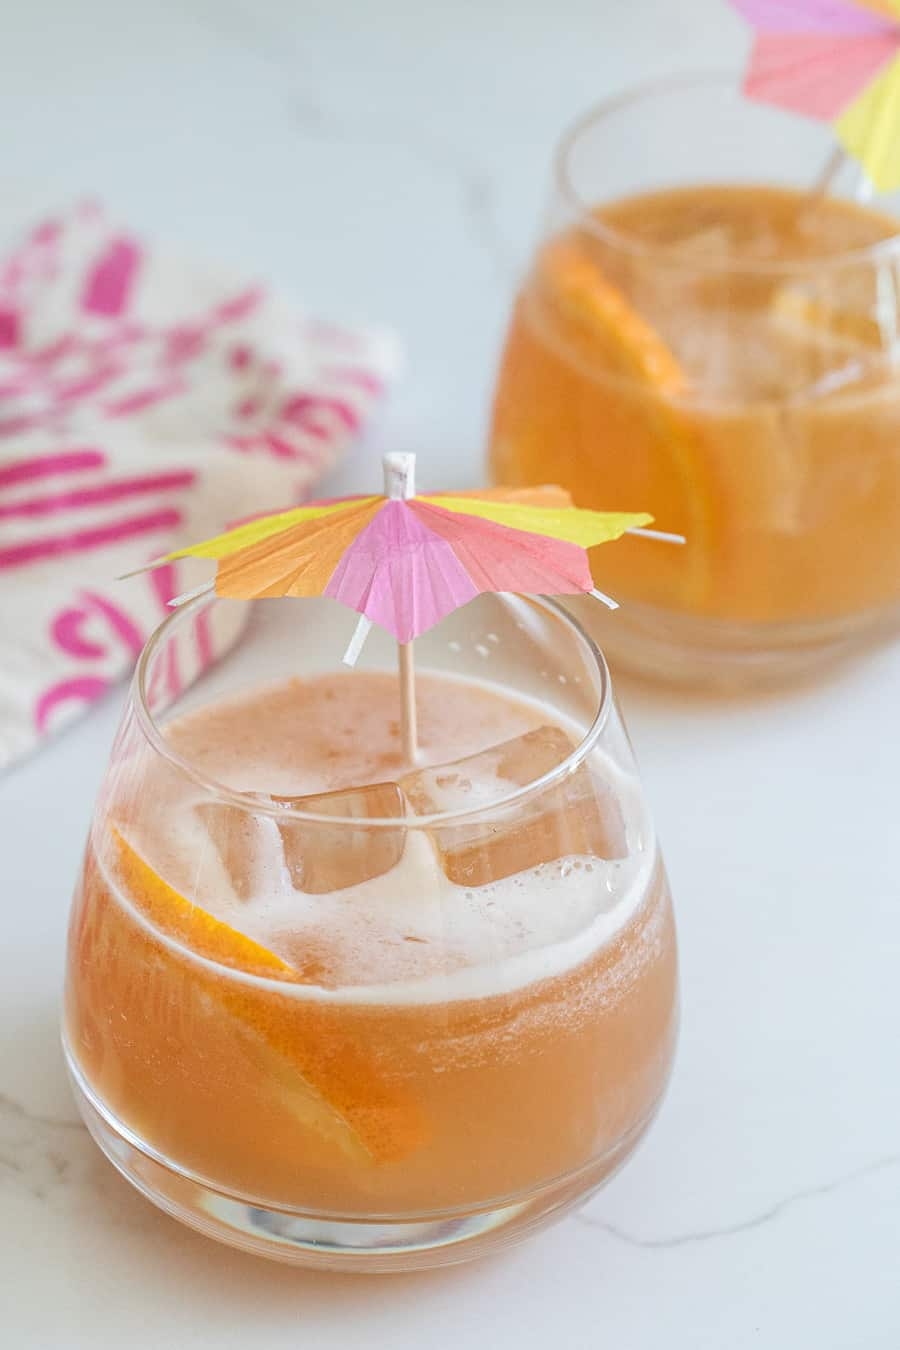 rum punch in a glass with a cocktail umbrella